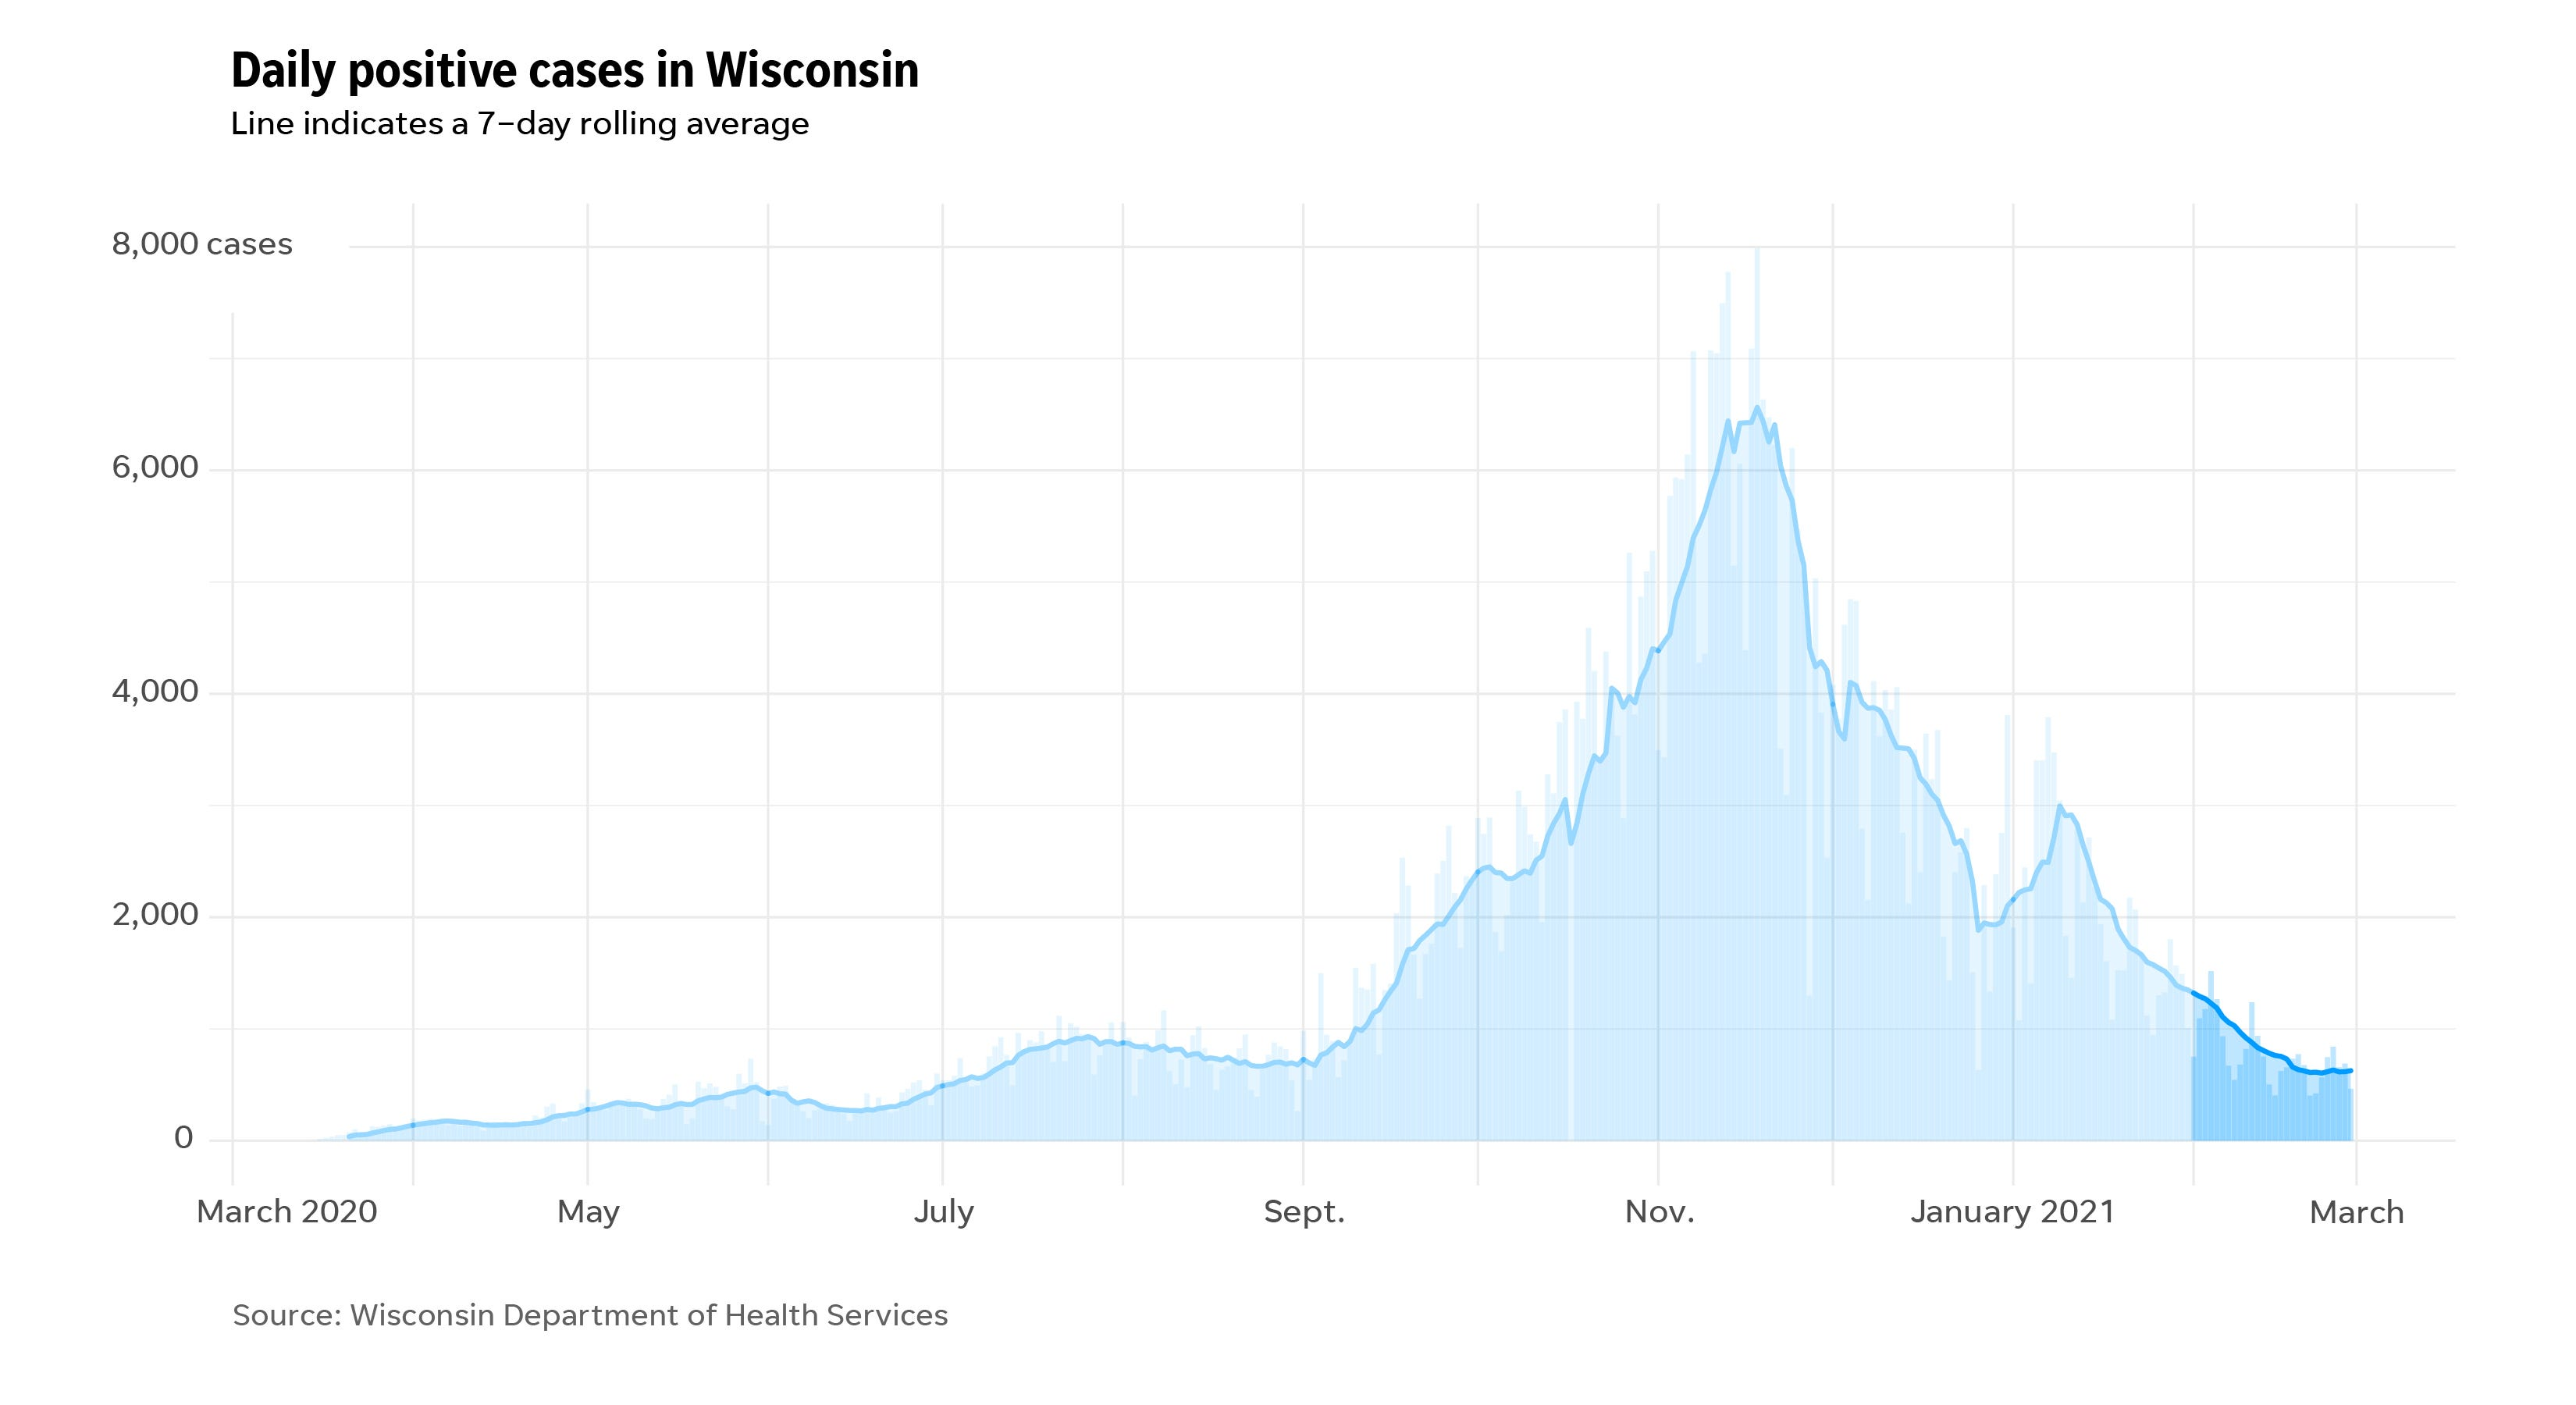 COVID-19 daily cases in Wisconsin since the start of the pandemic highlighting February 2021.